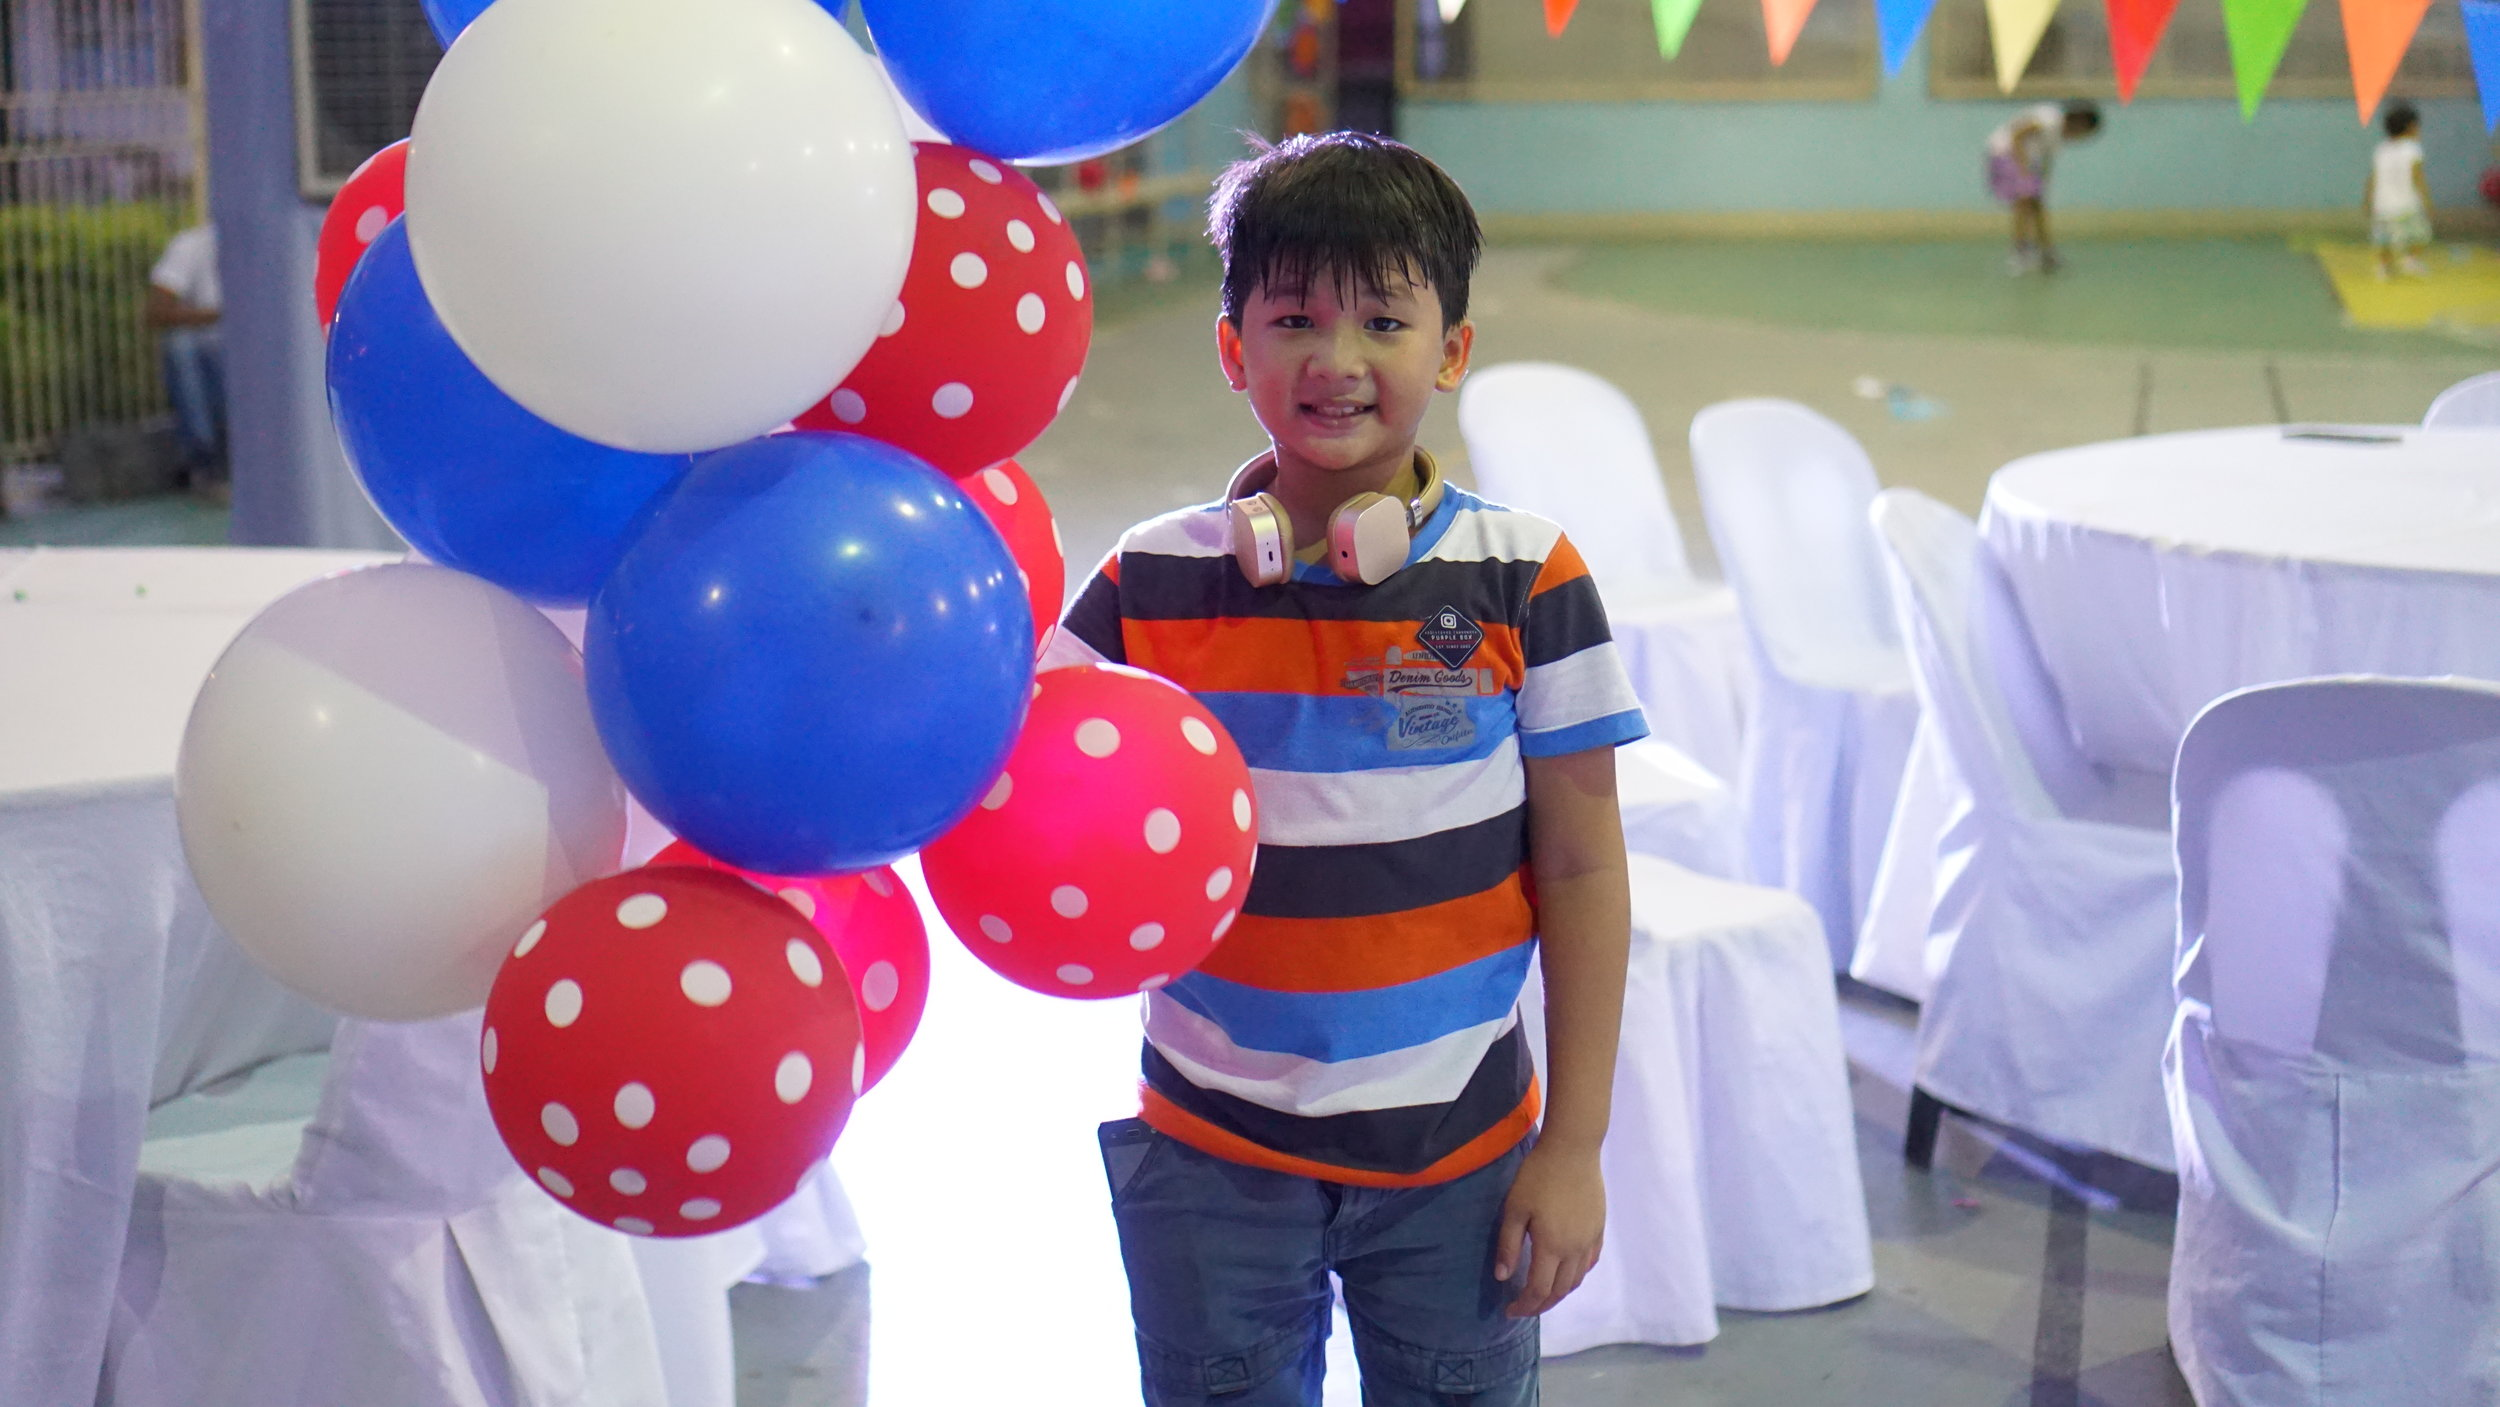 My cousin, Gabo. Blue, red, and white balloons (Philippine flag colors) tied all around the basketball court and popped or taken home by the kiddies. :)